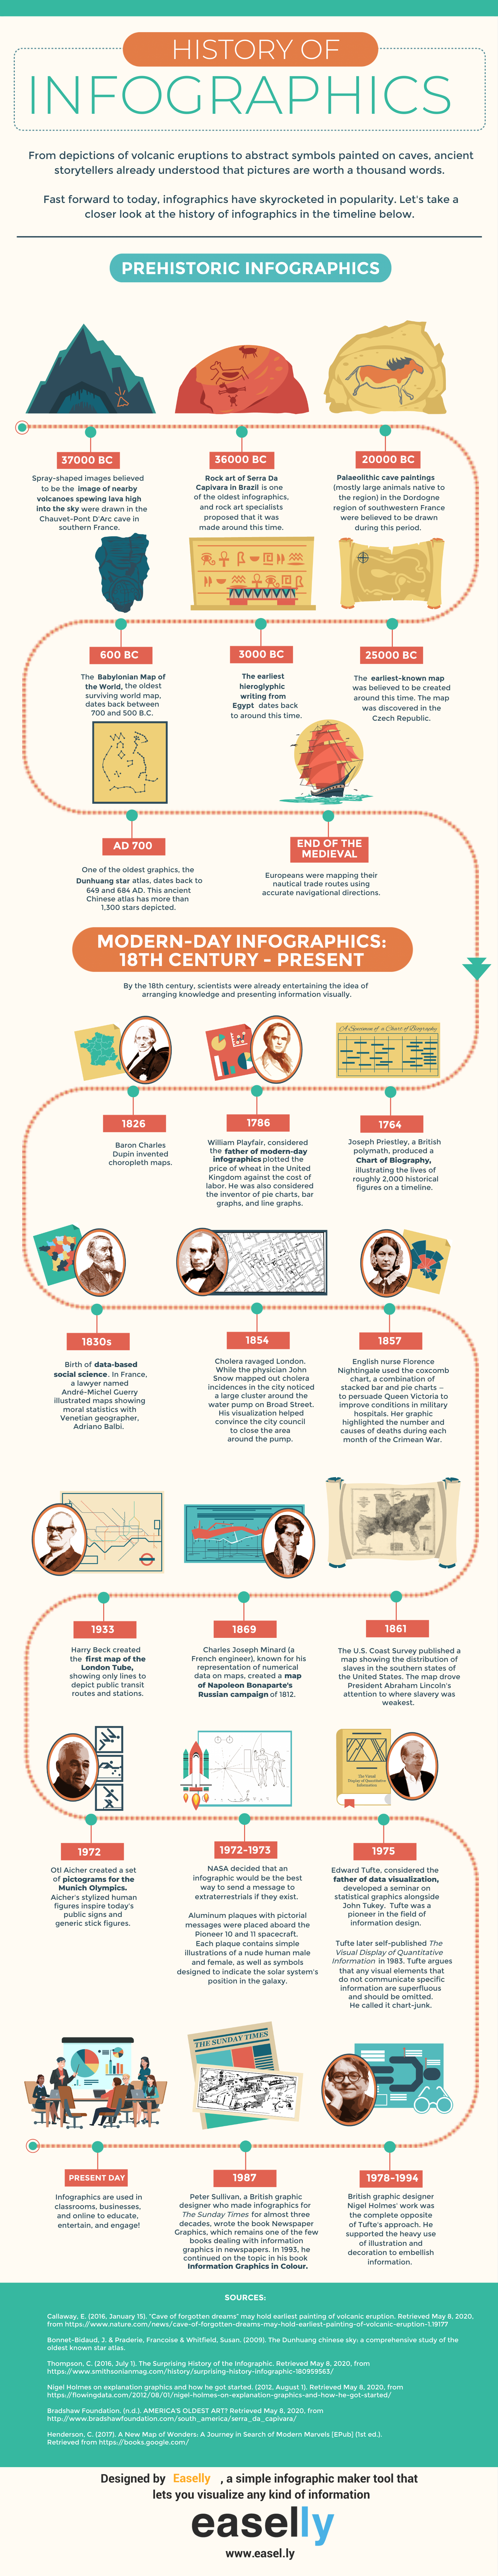 An infographic about the history of infographics